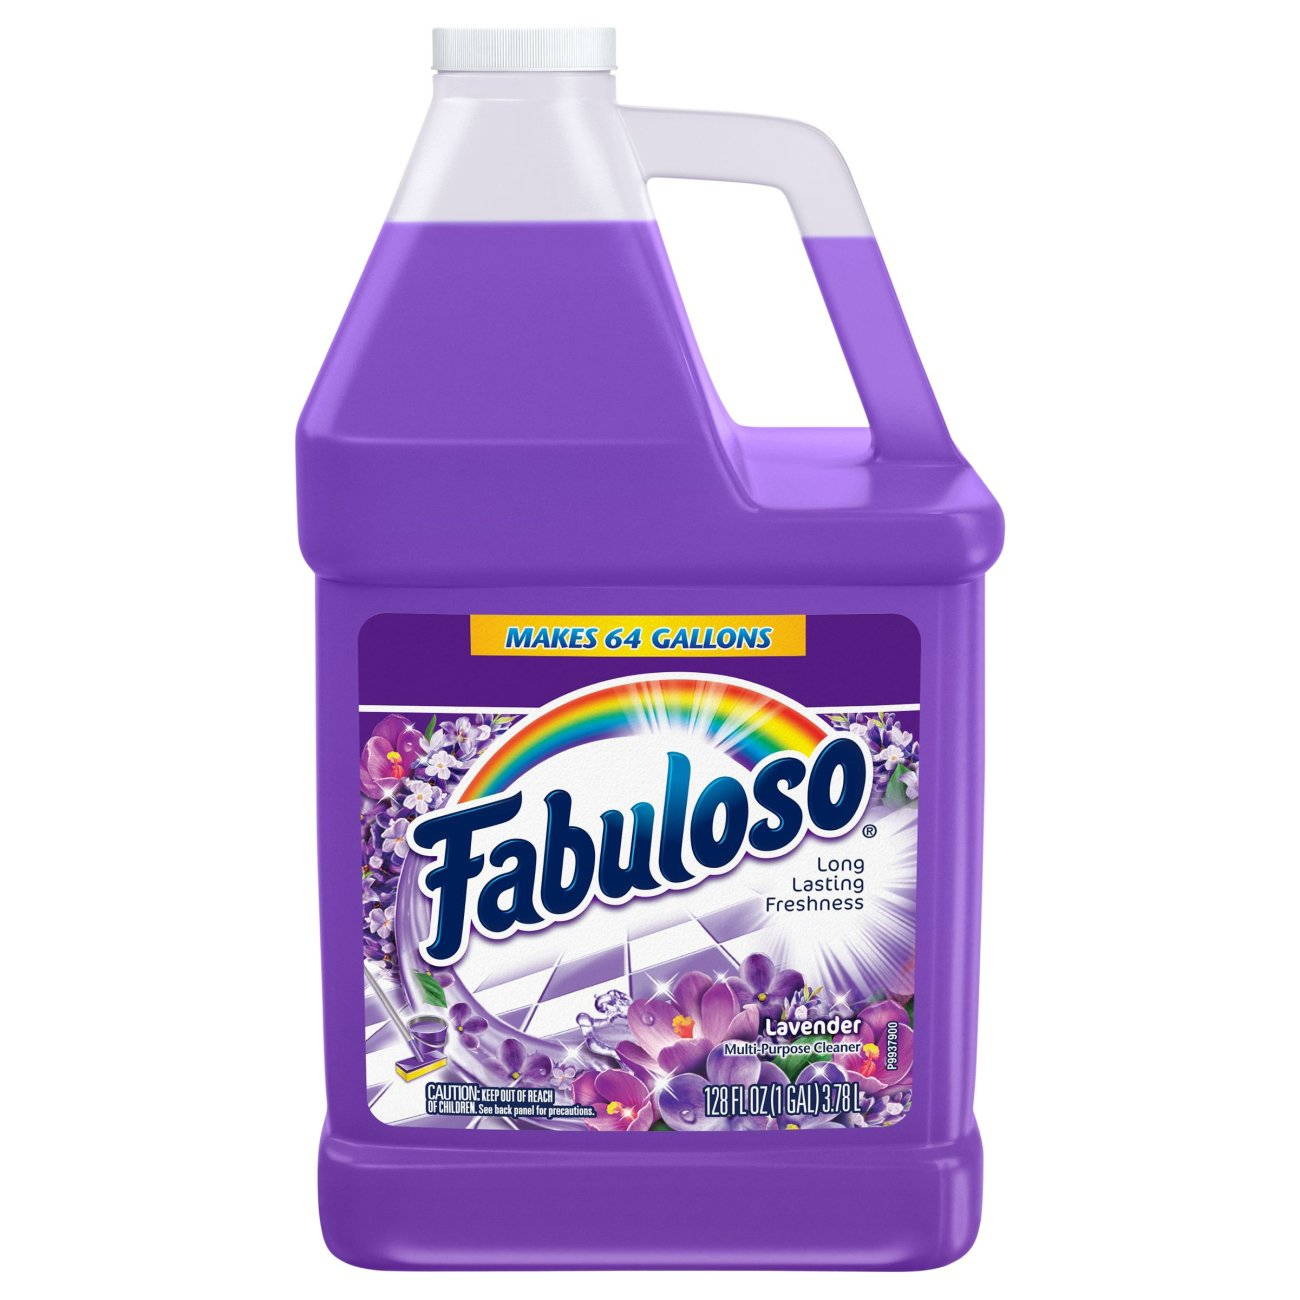 Fabuloso Lavender Multi‑purpose Cleaner 128 oz